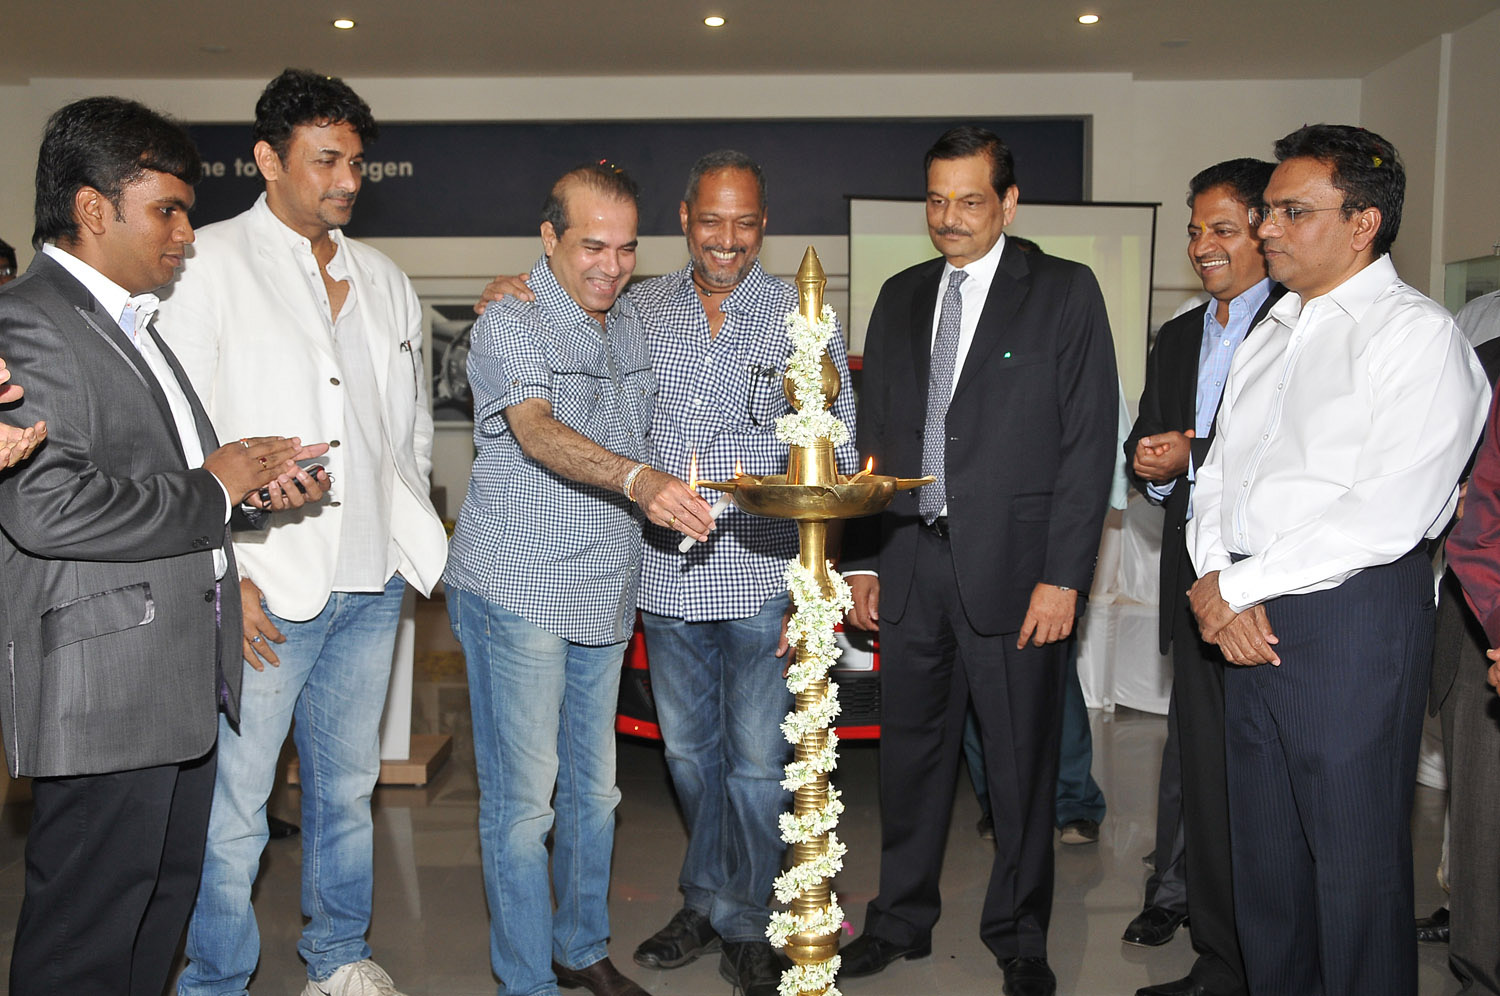 Abhishek Mohite (Director Mohite Automotive) Arvind Saxena (Managing Director of Volkswagen passenger cars), Nana Patekar & Dilip Mohite (Chairman, Mohite Group)